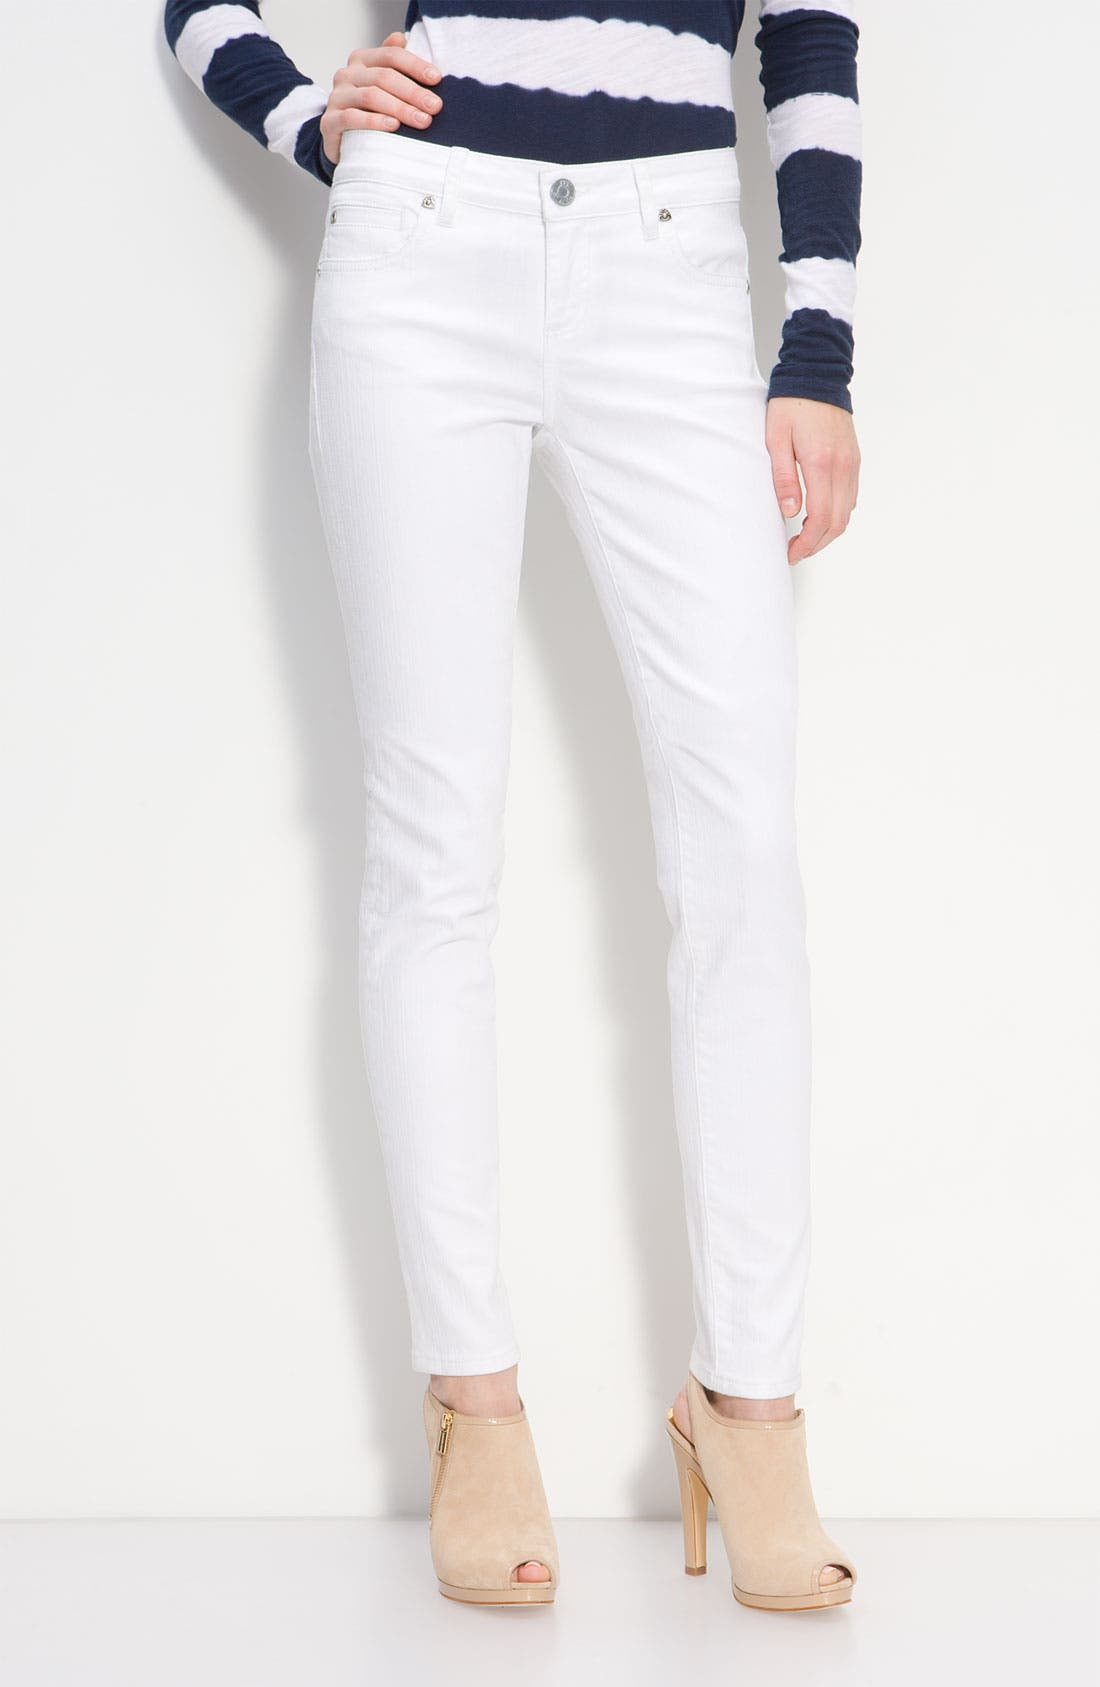 Main Image - KUT from the Kloth Skinny Jeans (White Wash)